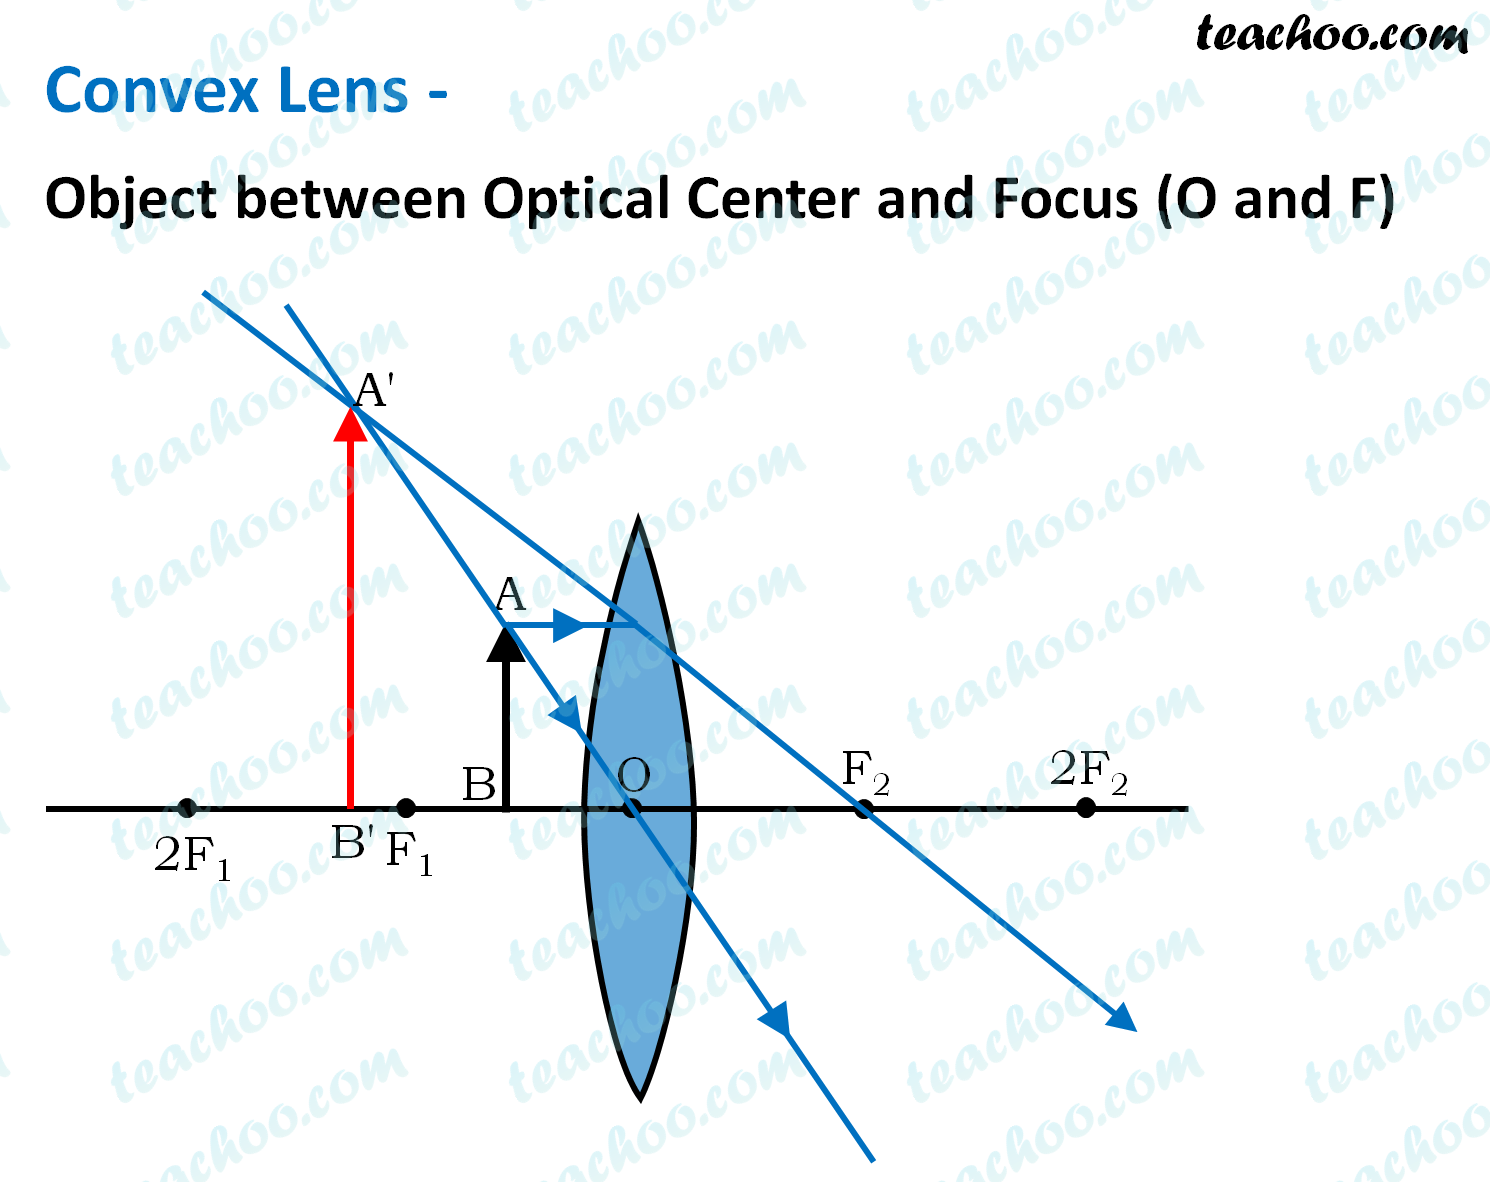 convex-lens---object-between-optical-center-and-focus-(o-and-f)---teachoo.png